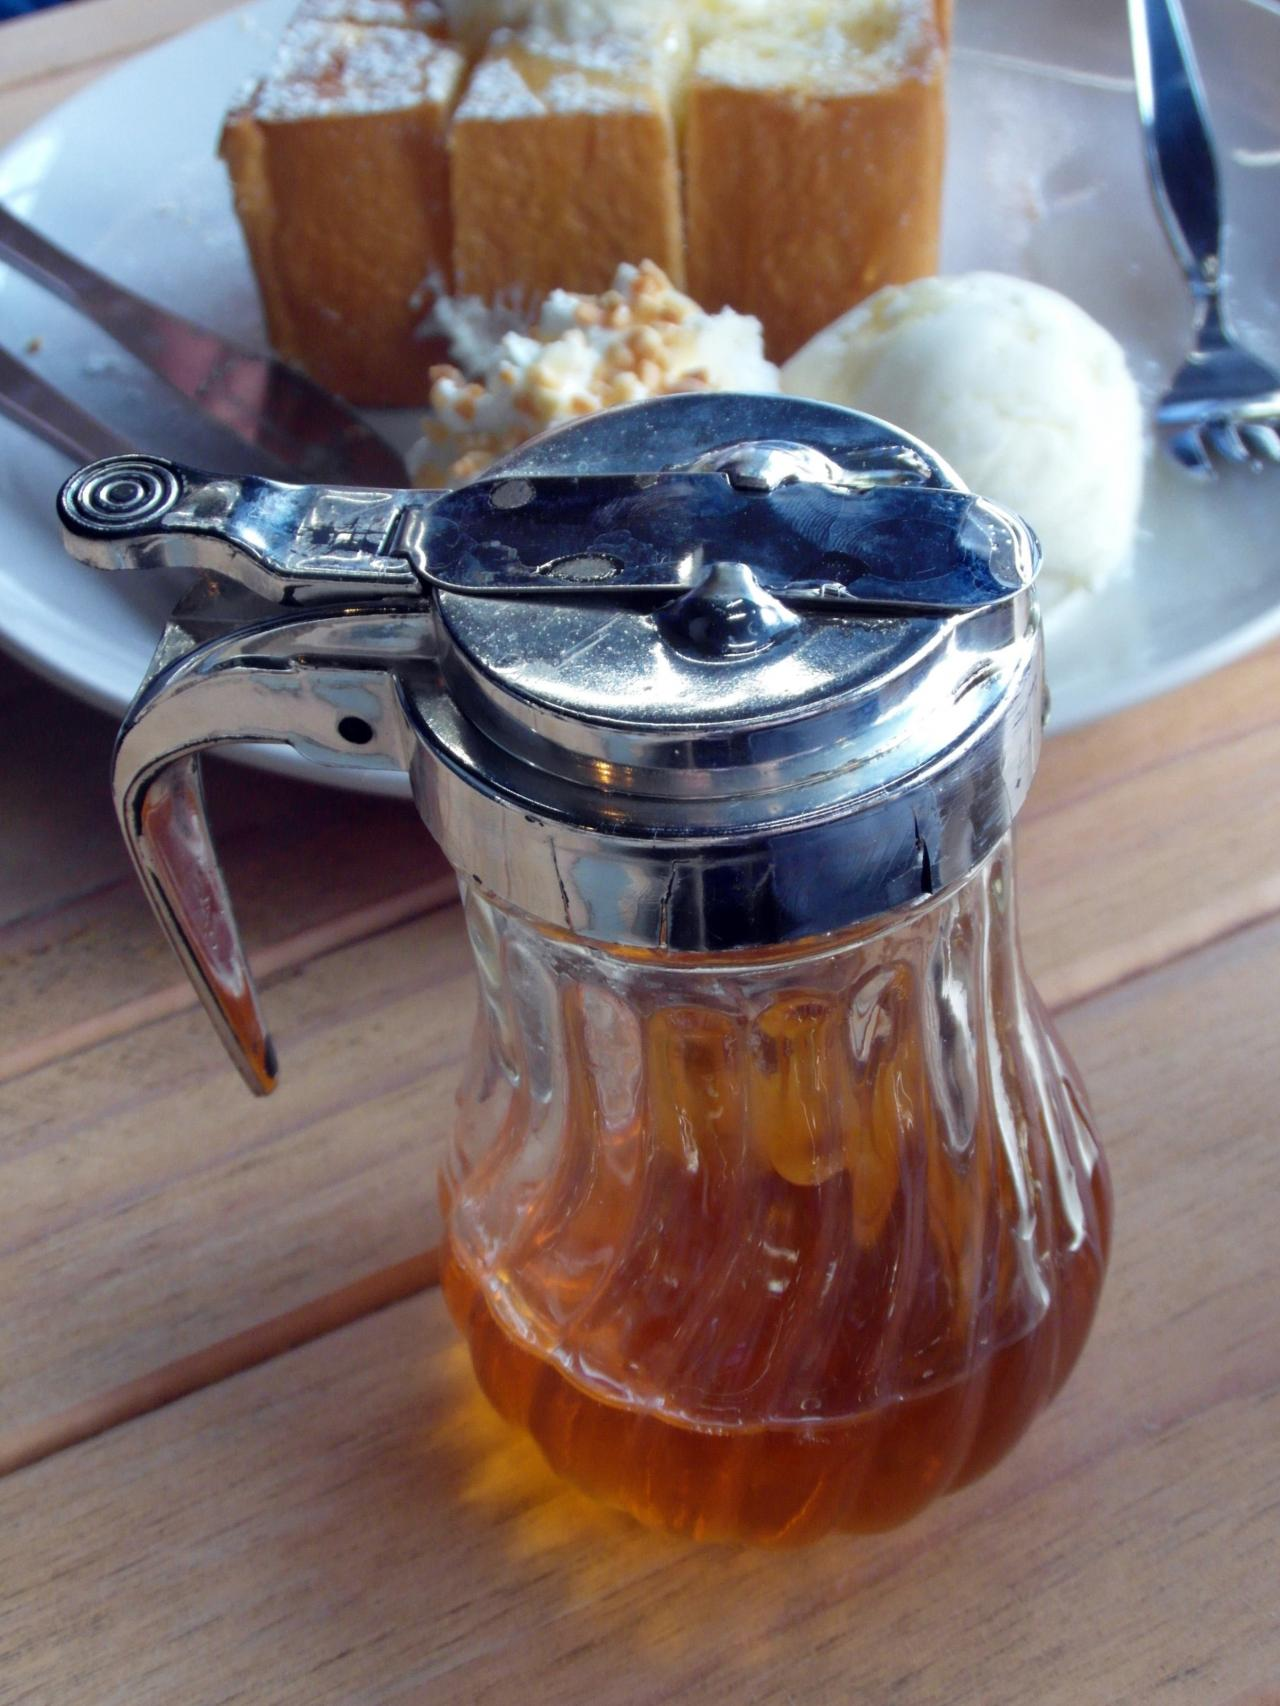 Honey Pot with Dessert, restaurant, pour, sweet, with, HQ Photo